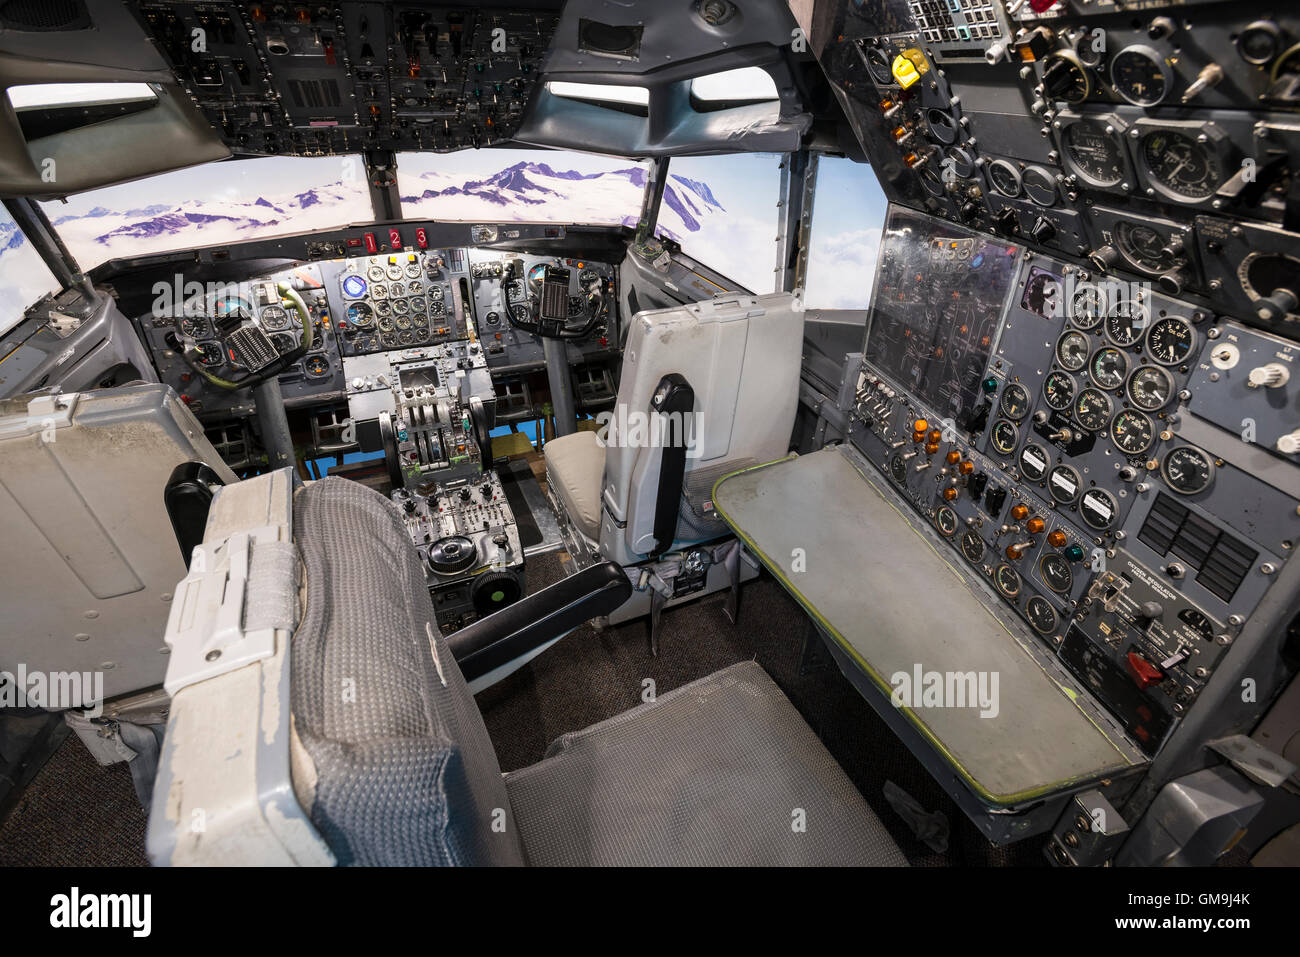 Cockpit simulator of a Boeing 727, Wings over the Rockies Air and Space Museum, Denver, Colorado. - Stock Image